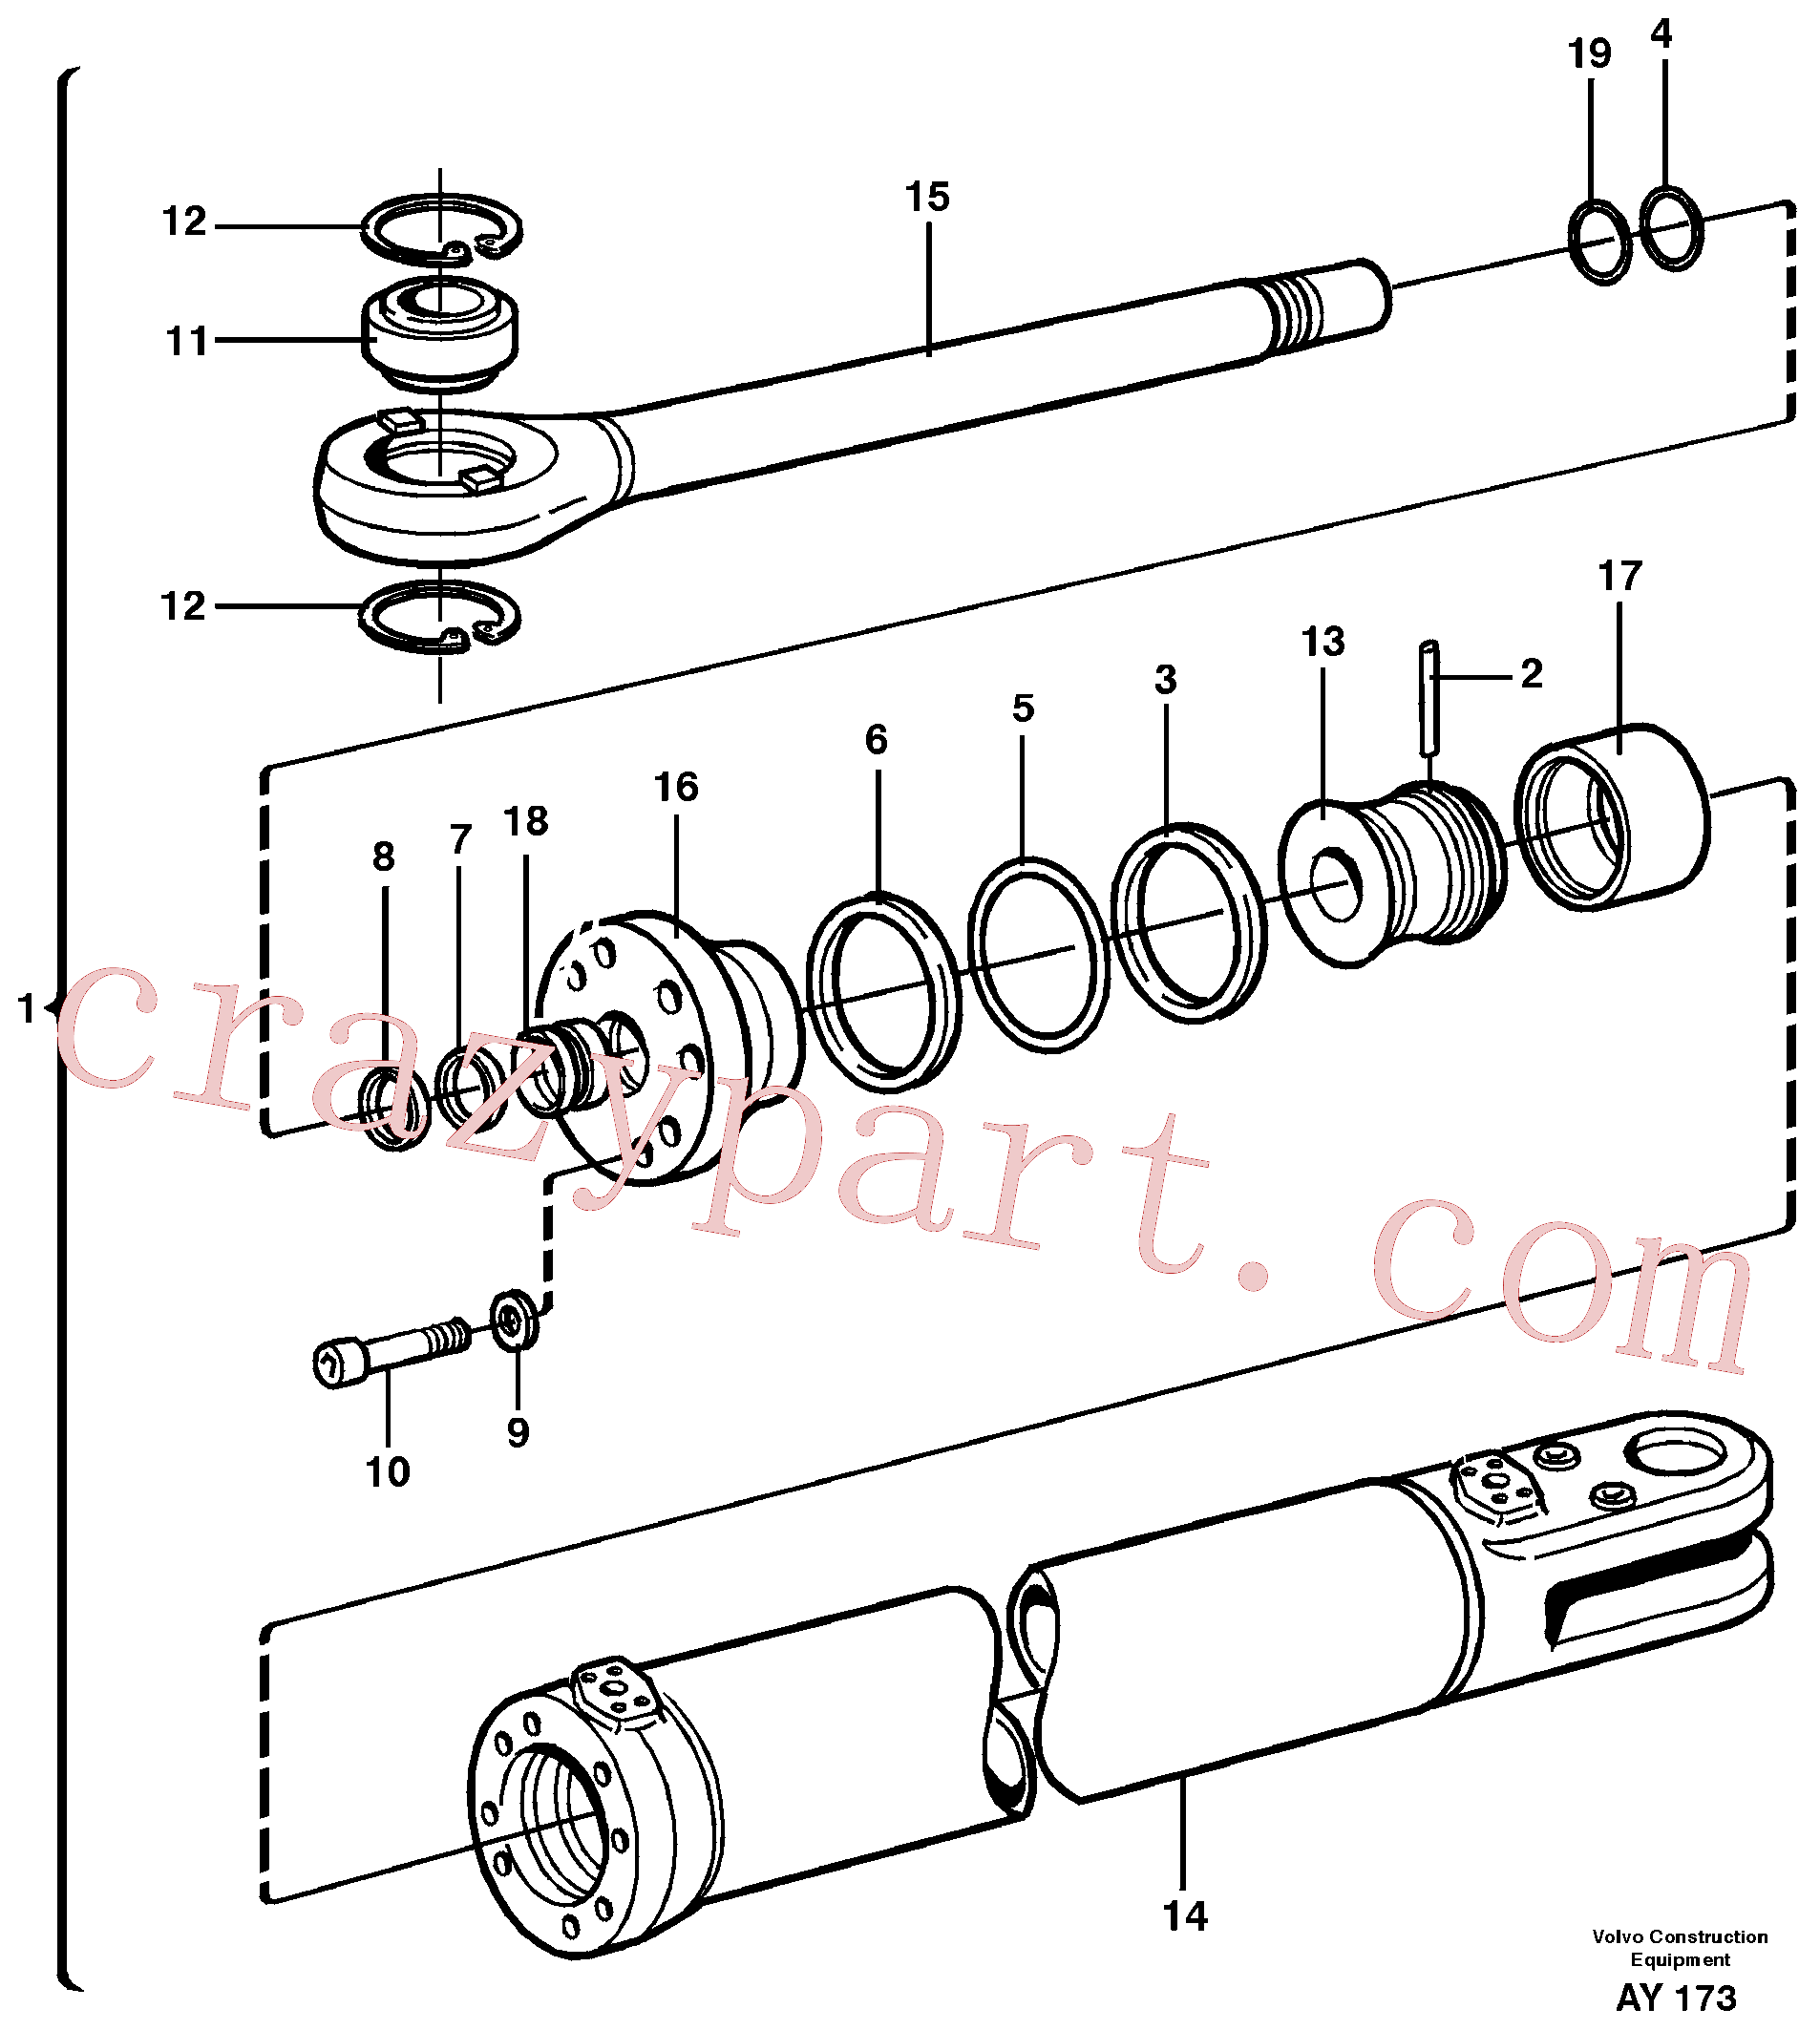 VOE11088148 for Volvo Hydraulic cylinder(AY173 assembly)